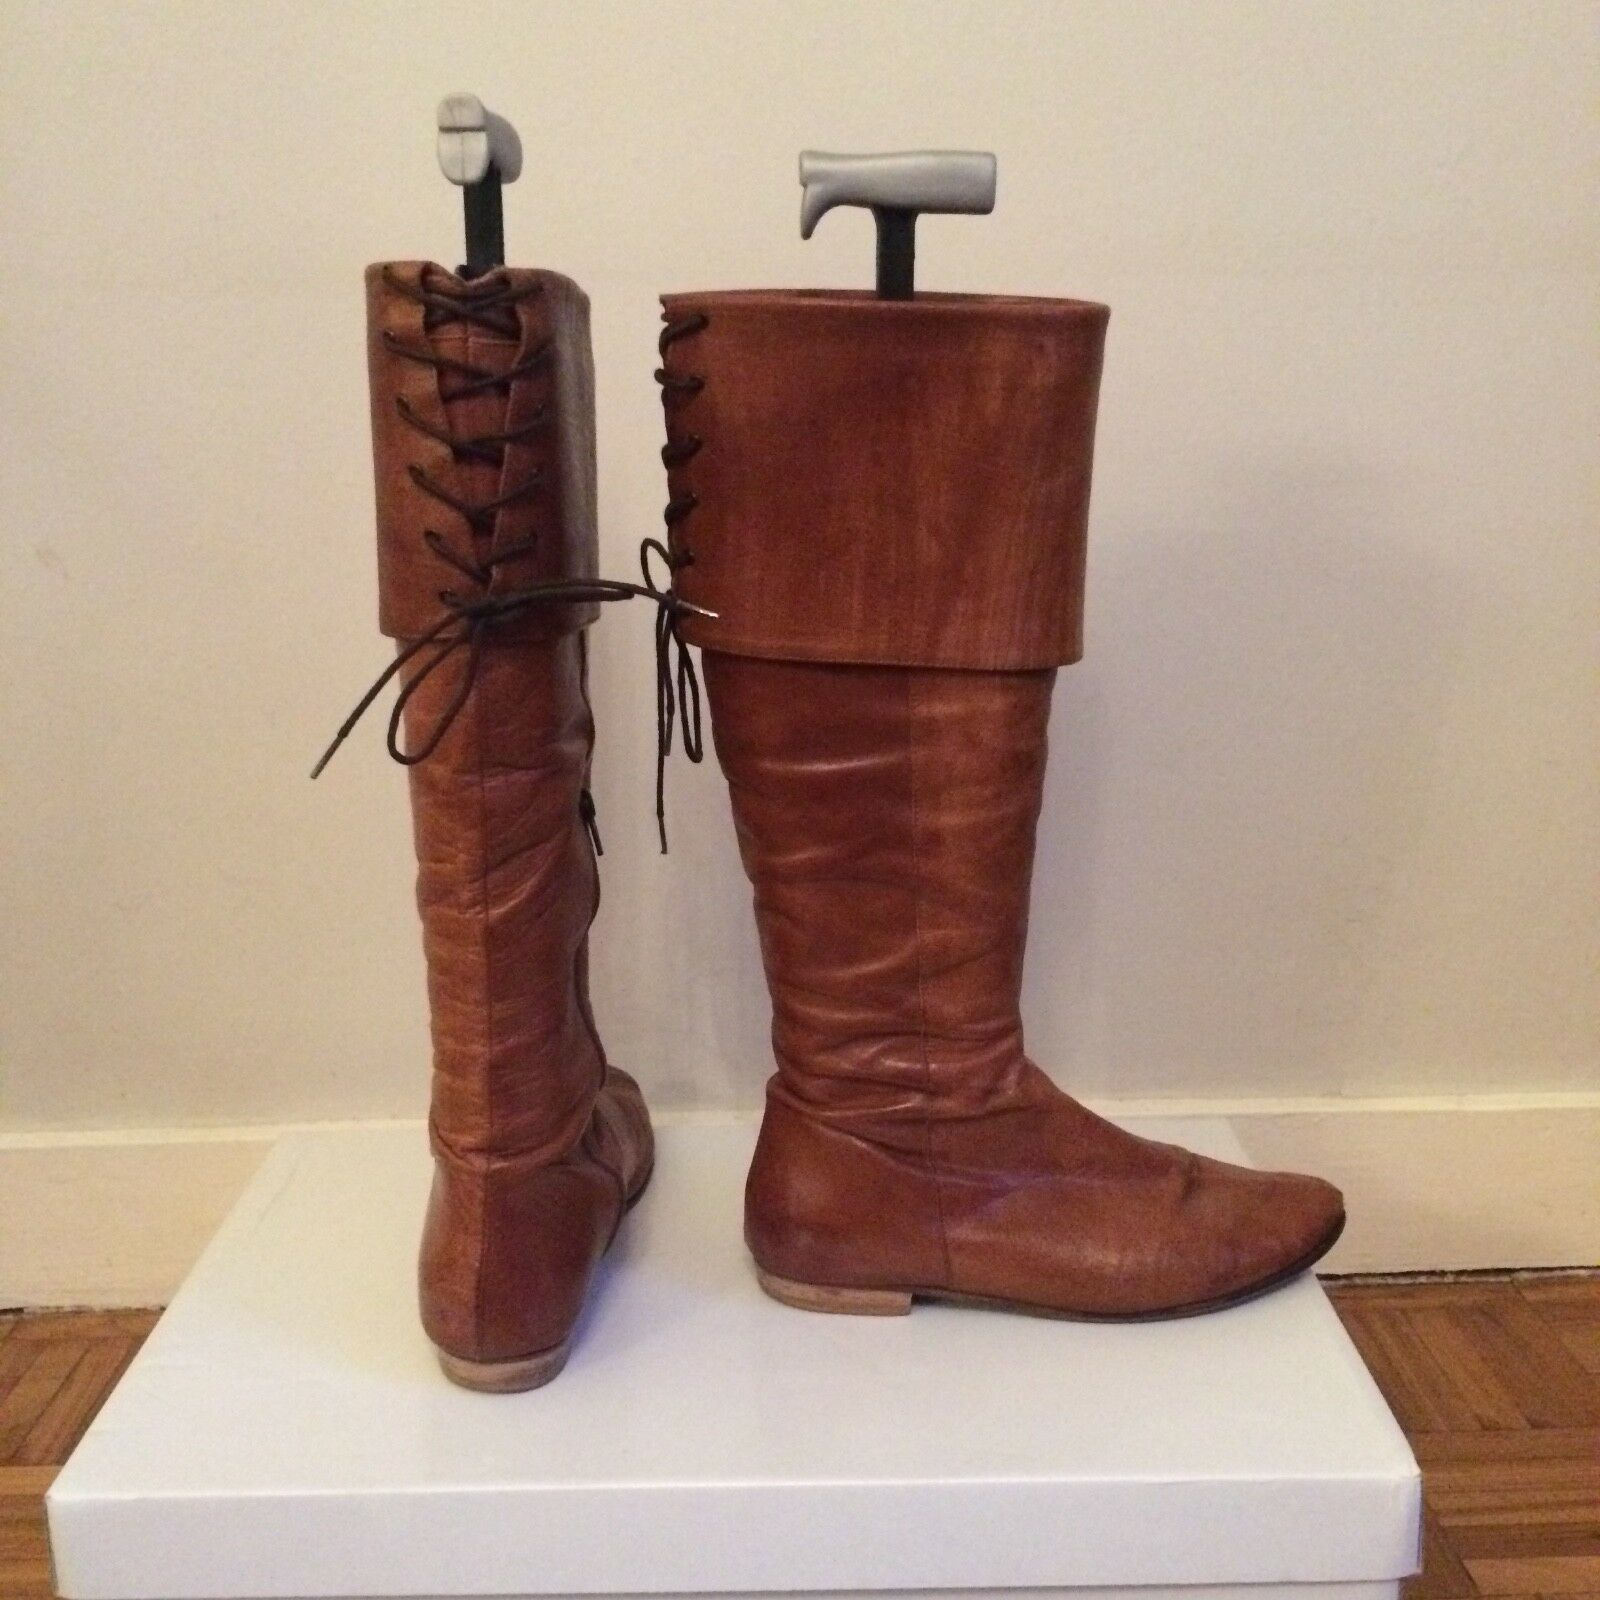 Pied a terre tan knee high over knee boots, size 5